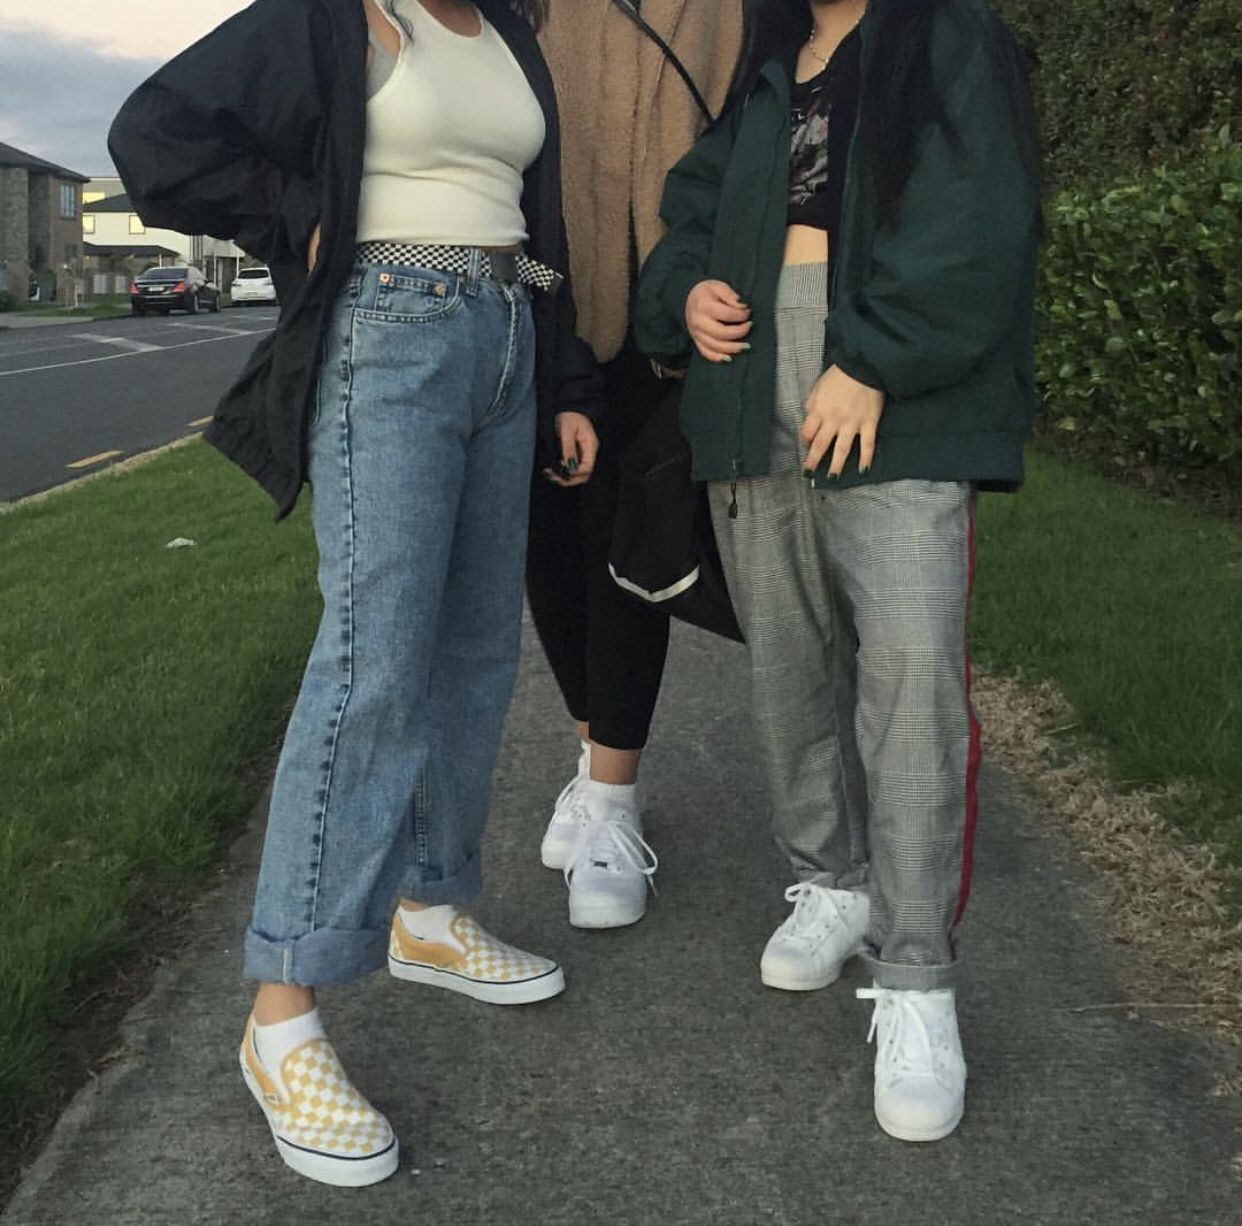 Grunge Outfits Fashion Vintage Clothes Art Aesthetic Tumblr Colortrends Colour Shoes Cute 90s Style Ins Aesthetic Clothes Clothes Skater Outfits